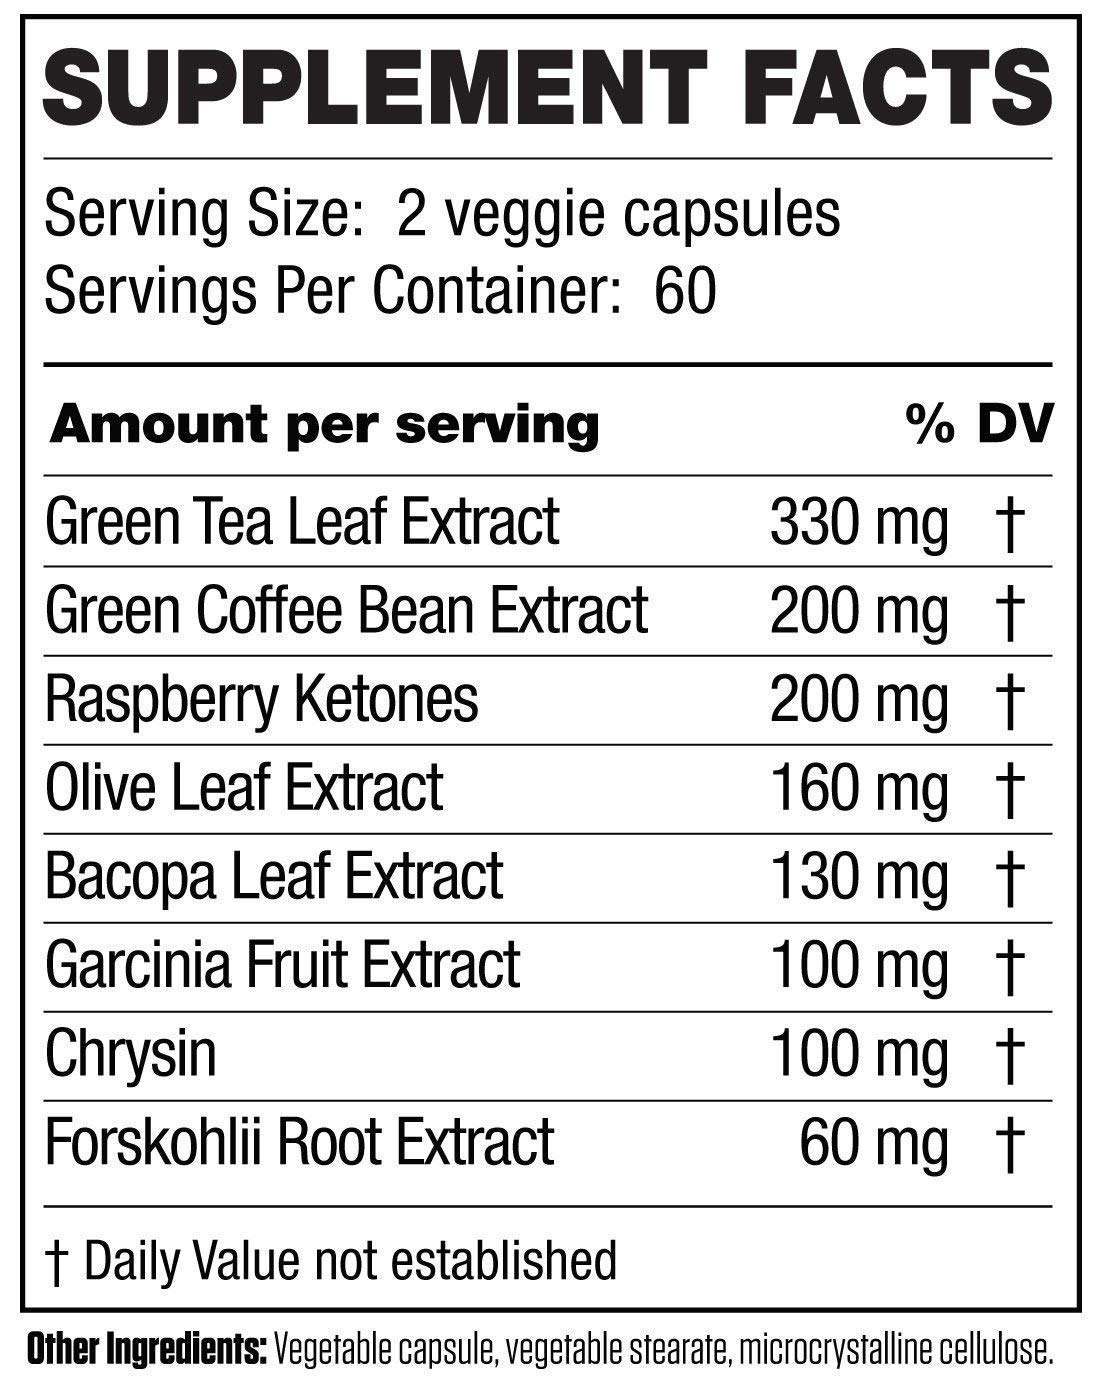 INVIGOR8 Superfood Shake (Chocolate) and Fat Burner Bundle. Gluten-Free and Non GMO Meal Replacement Shake & Healthy Garcinia Weight Loss Supplement/Appetite Suppressant. by BRL Sports Nutrition